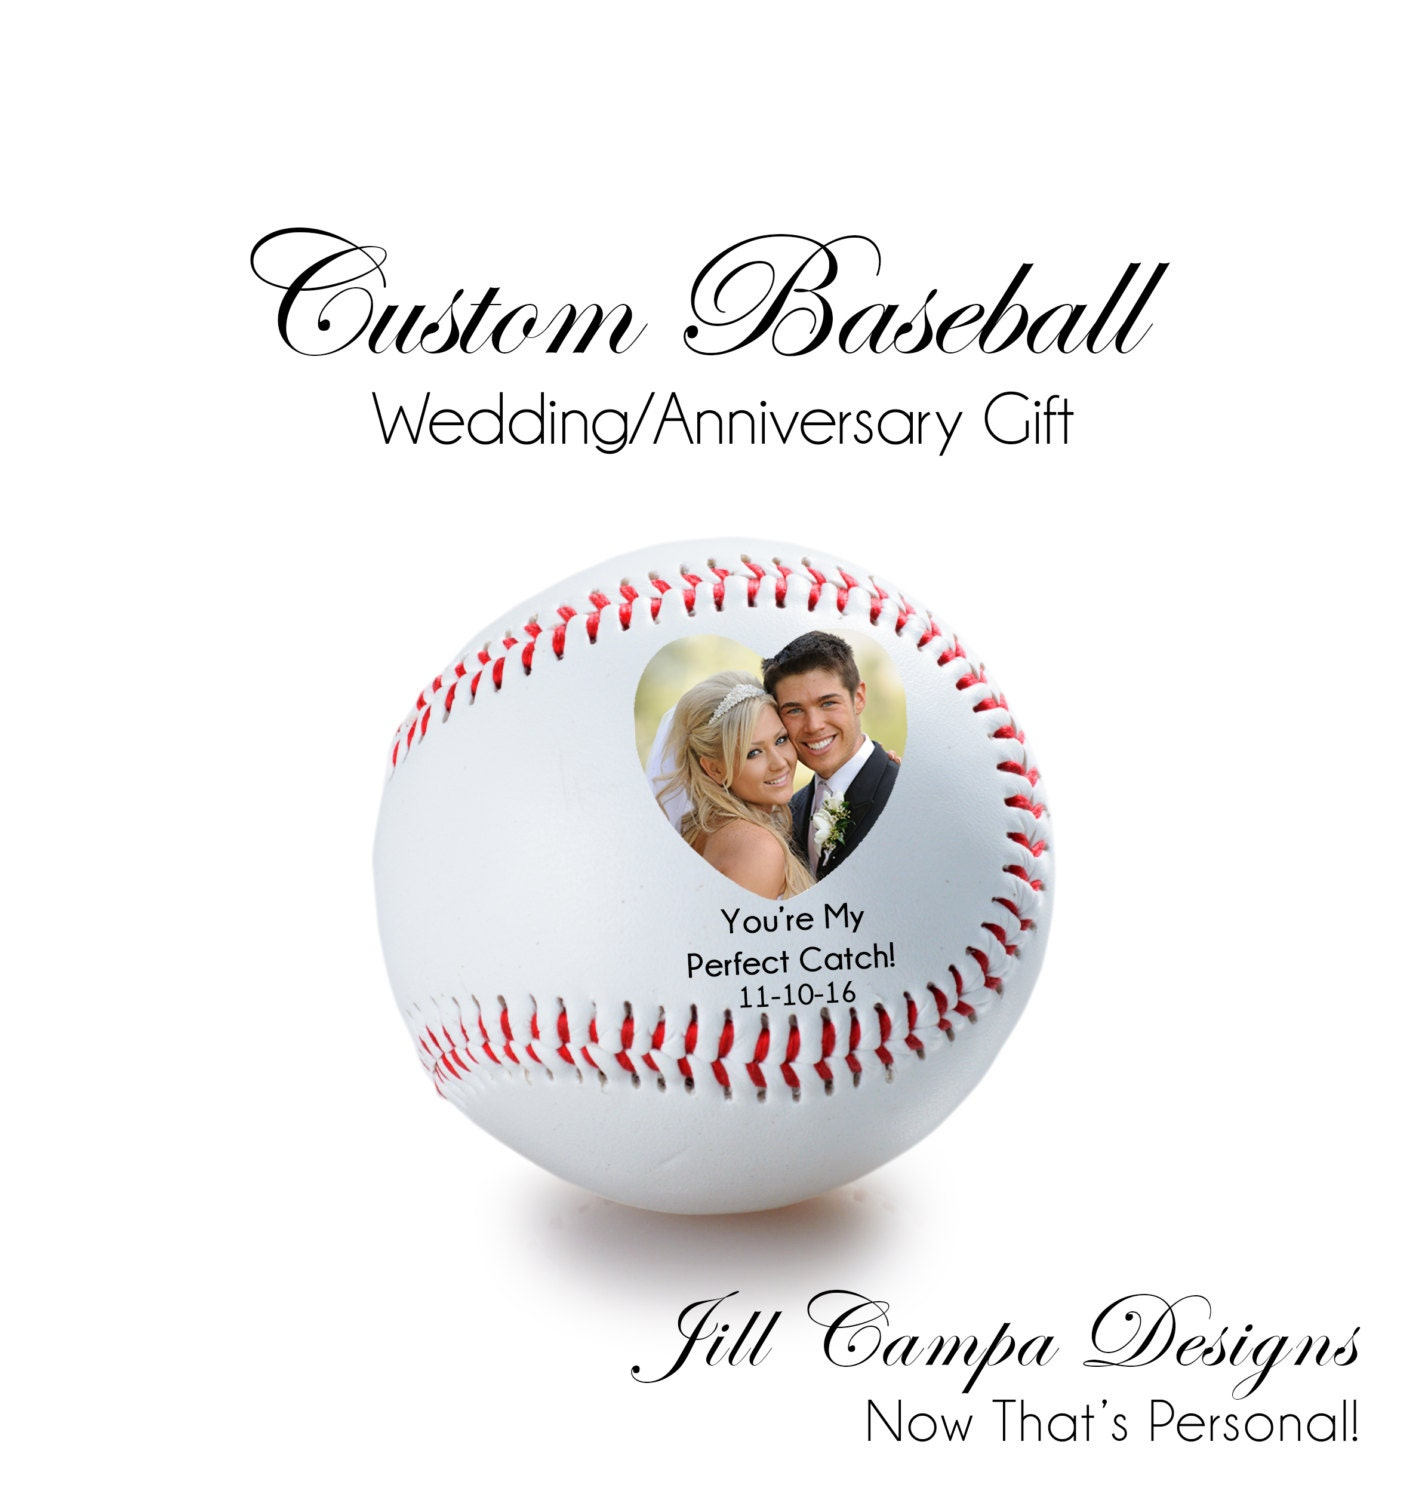 Baseball Wedding Gifts: WEDDING GIFT ANNIVERSARY Gift Personalized Baseball Your